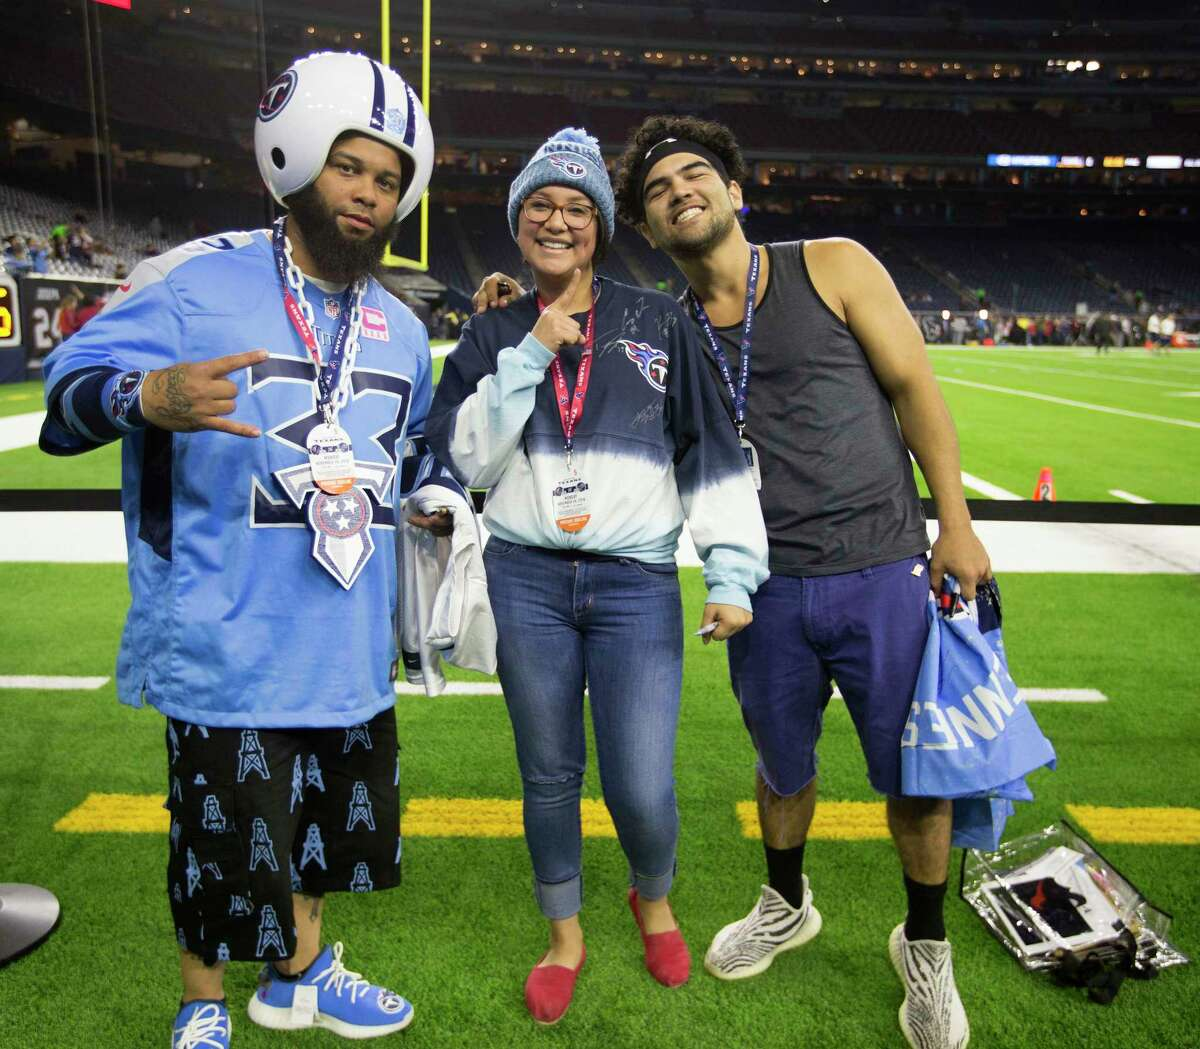 Tennessee Titans fans before the start of an NFL football game at NRG Stadium, Monday, Nov. 26, 2018, in Houston.